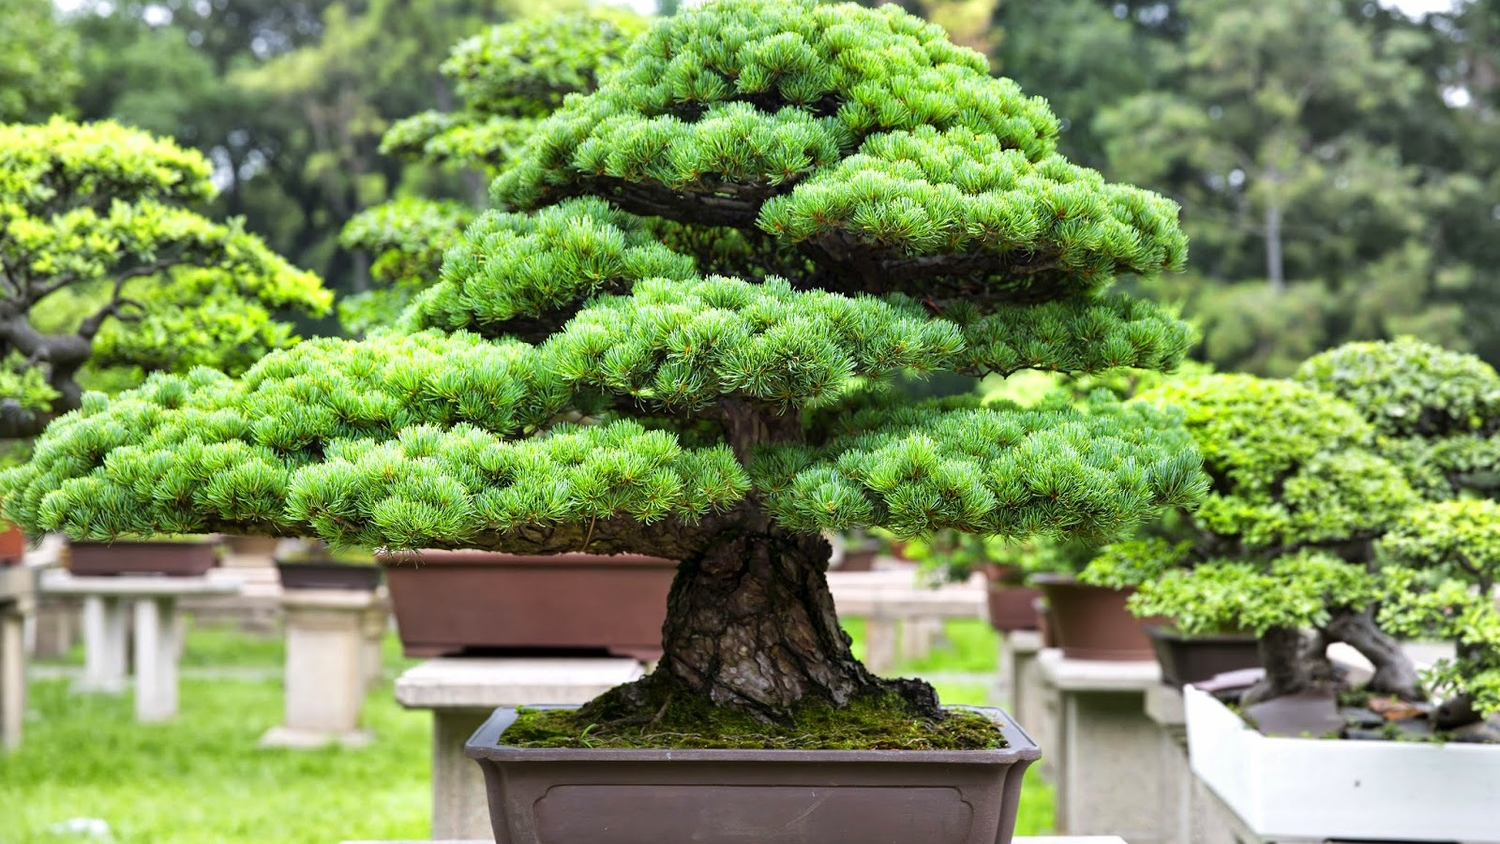 Learning The Art Of Bonsai Can Calm Your Nerves Sunnyside Nursery